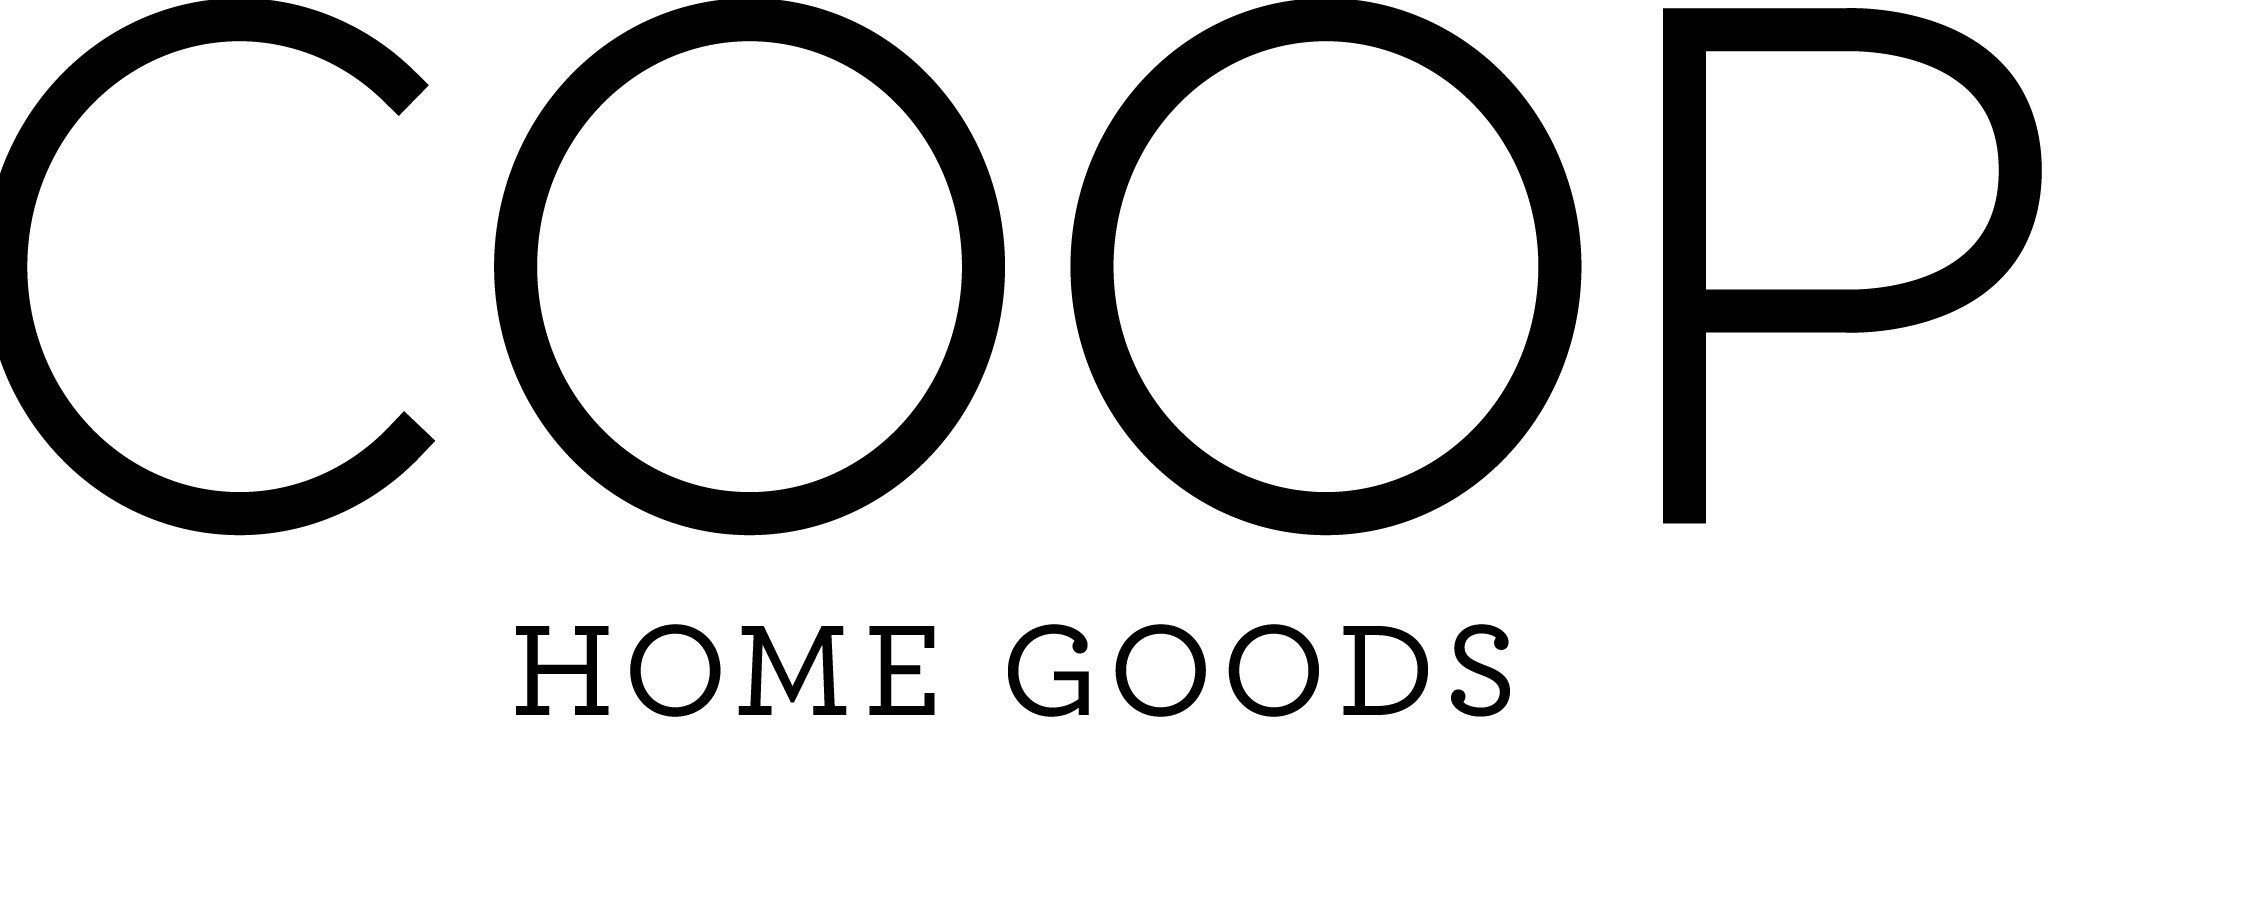 Coop Home Goods Discount Code & Coupon codes